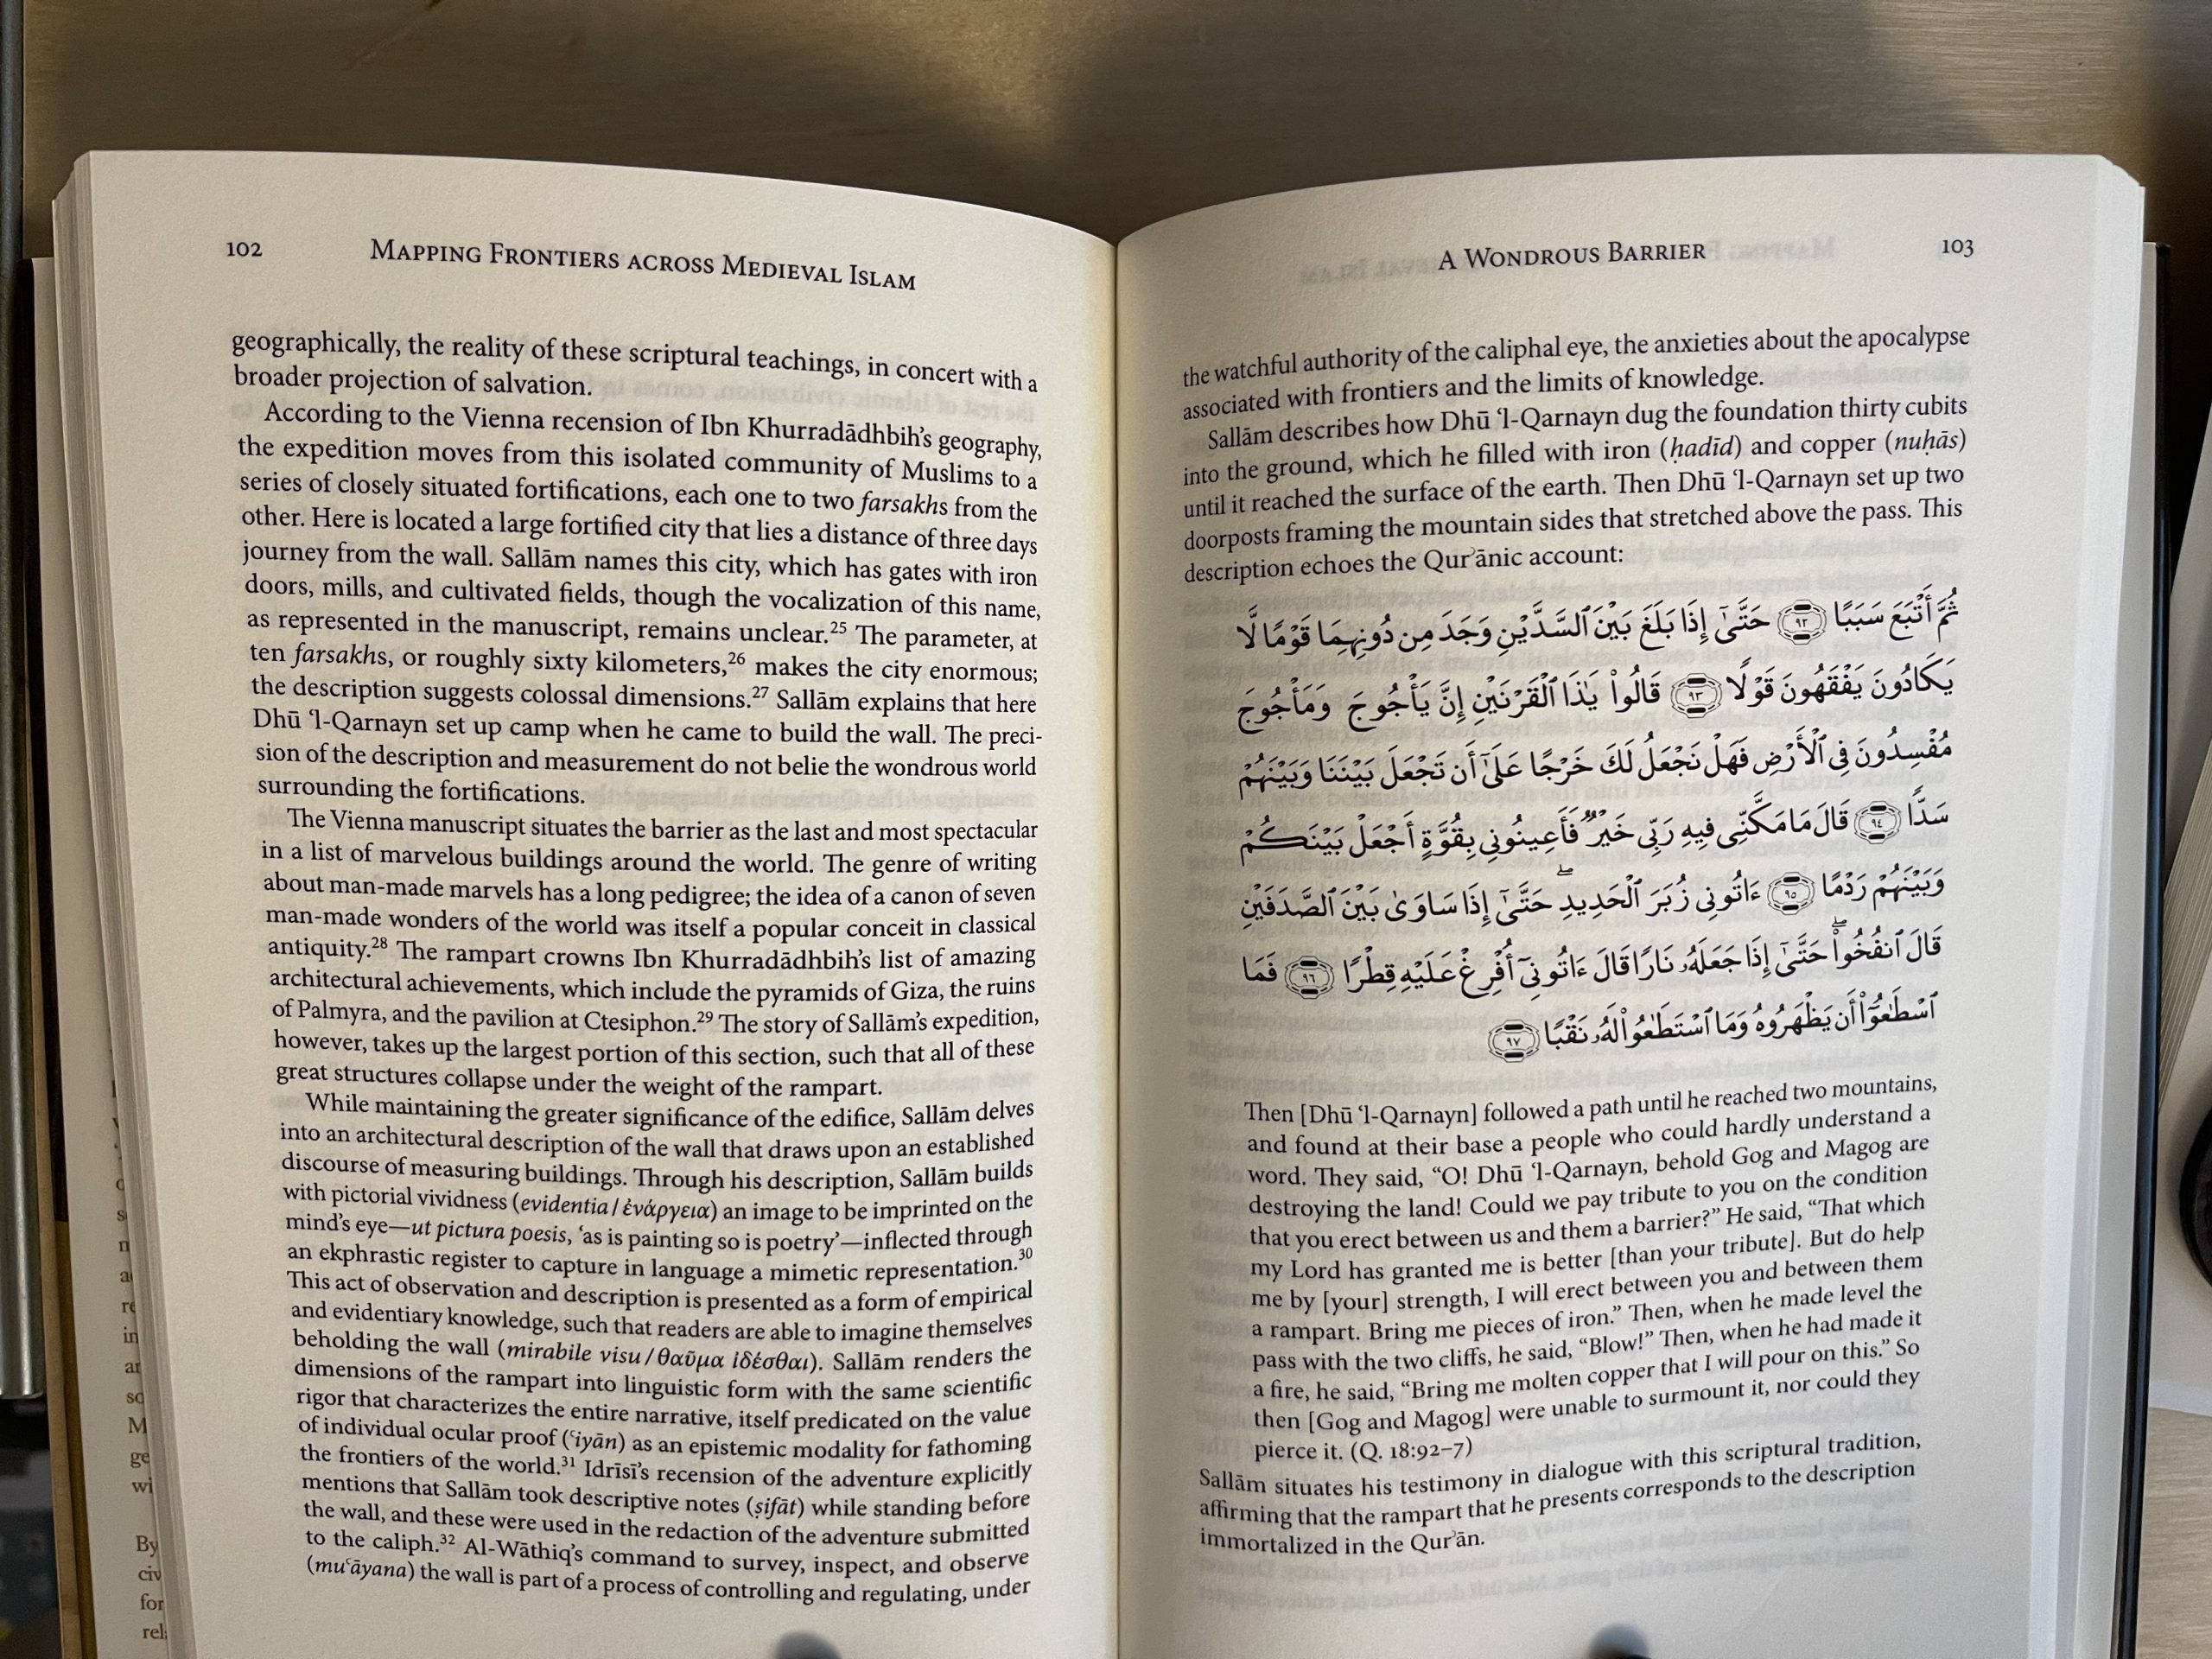 IB Tauris:  Mapping Frontiers, Quranic Text